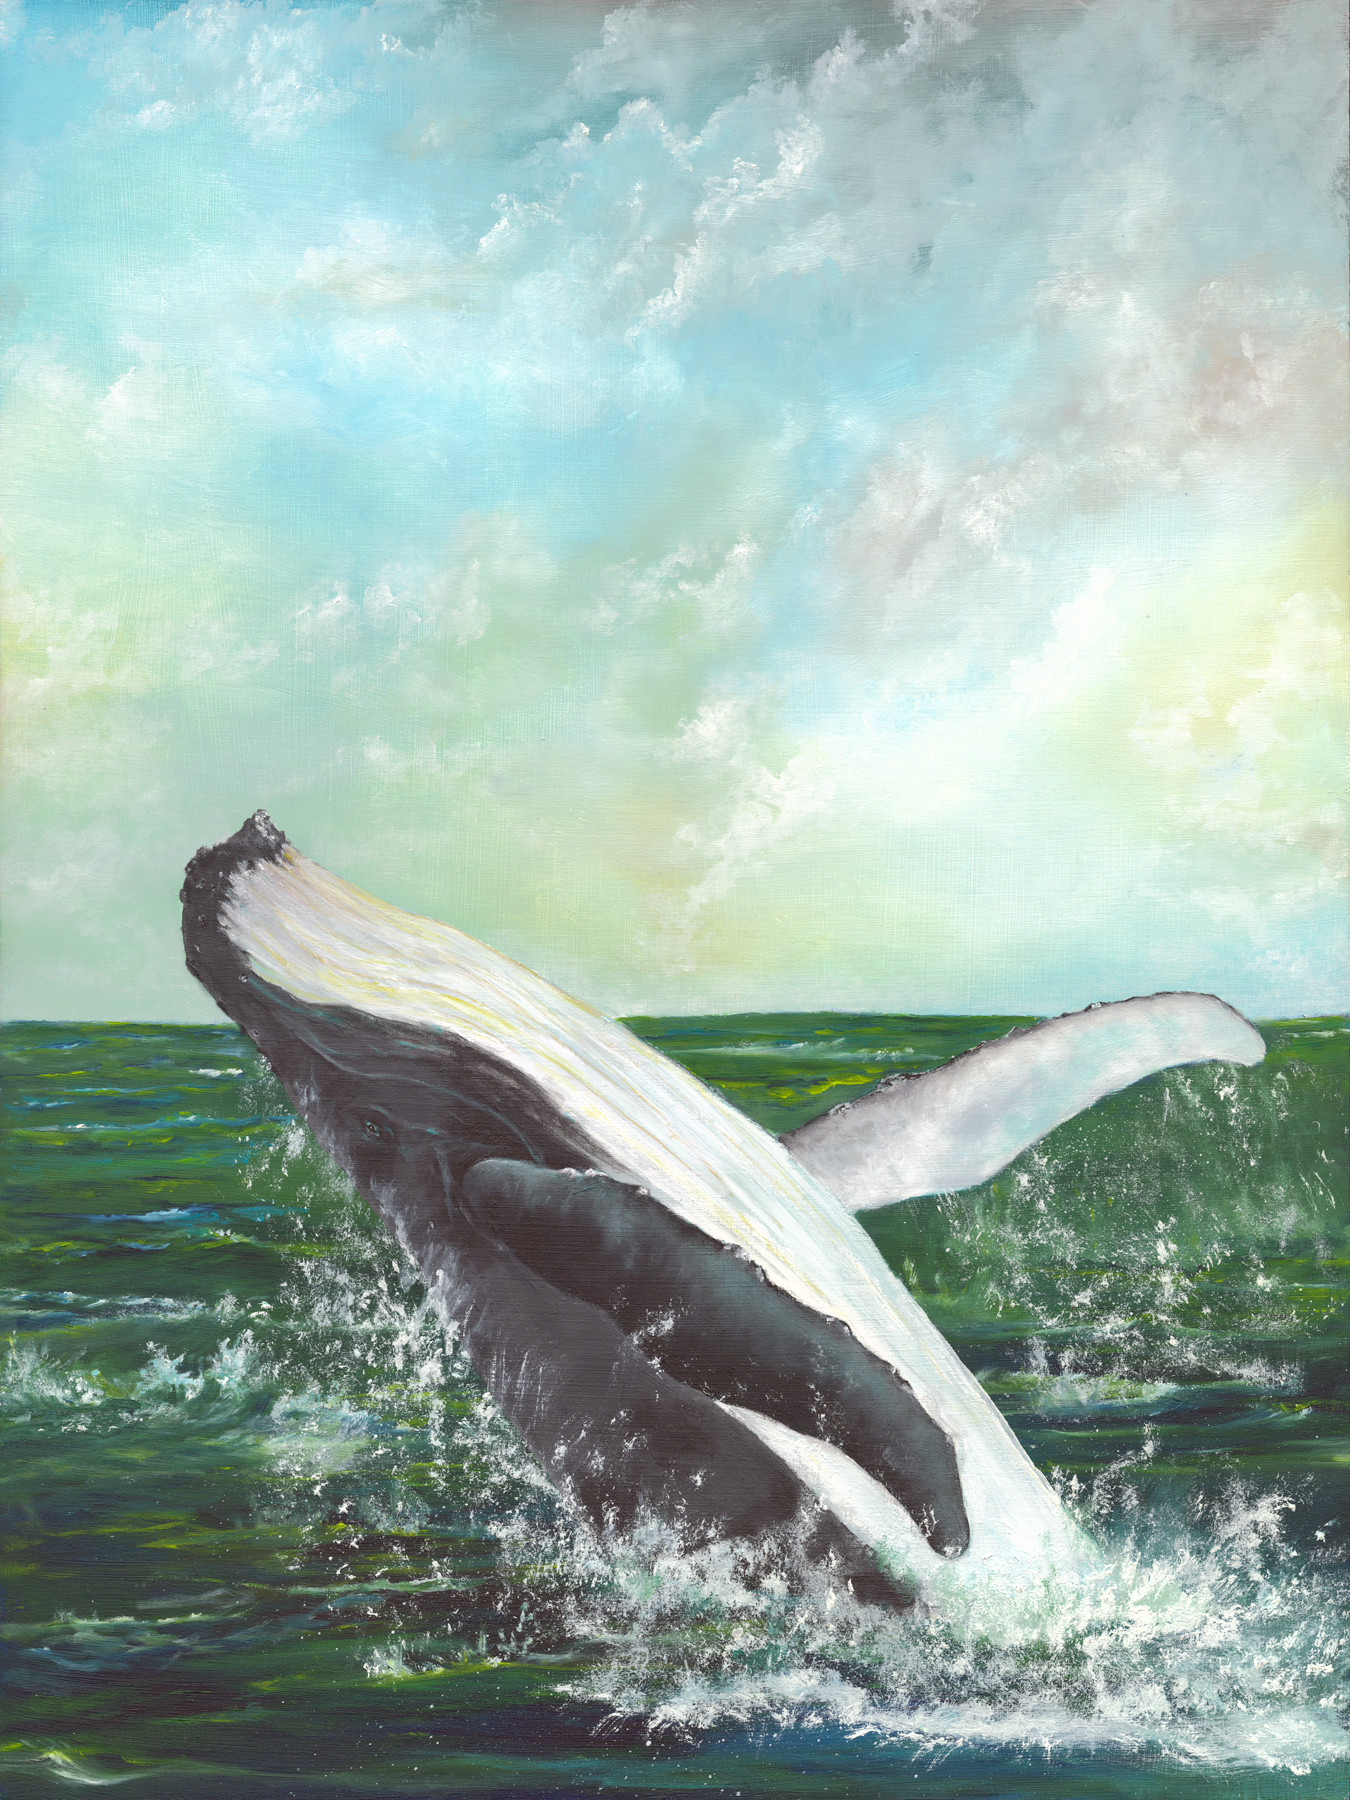 Whale II - 2nd in my series of breaching